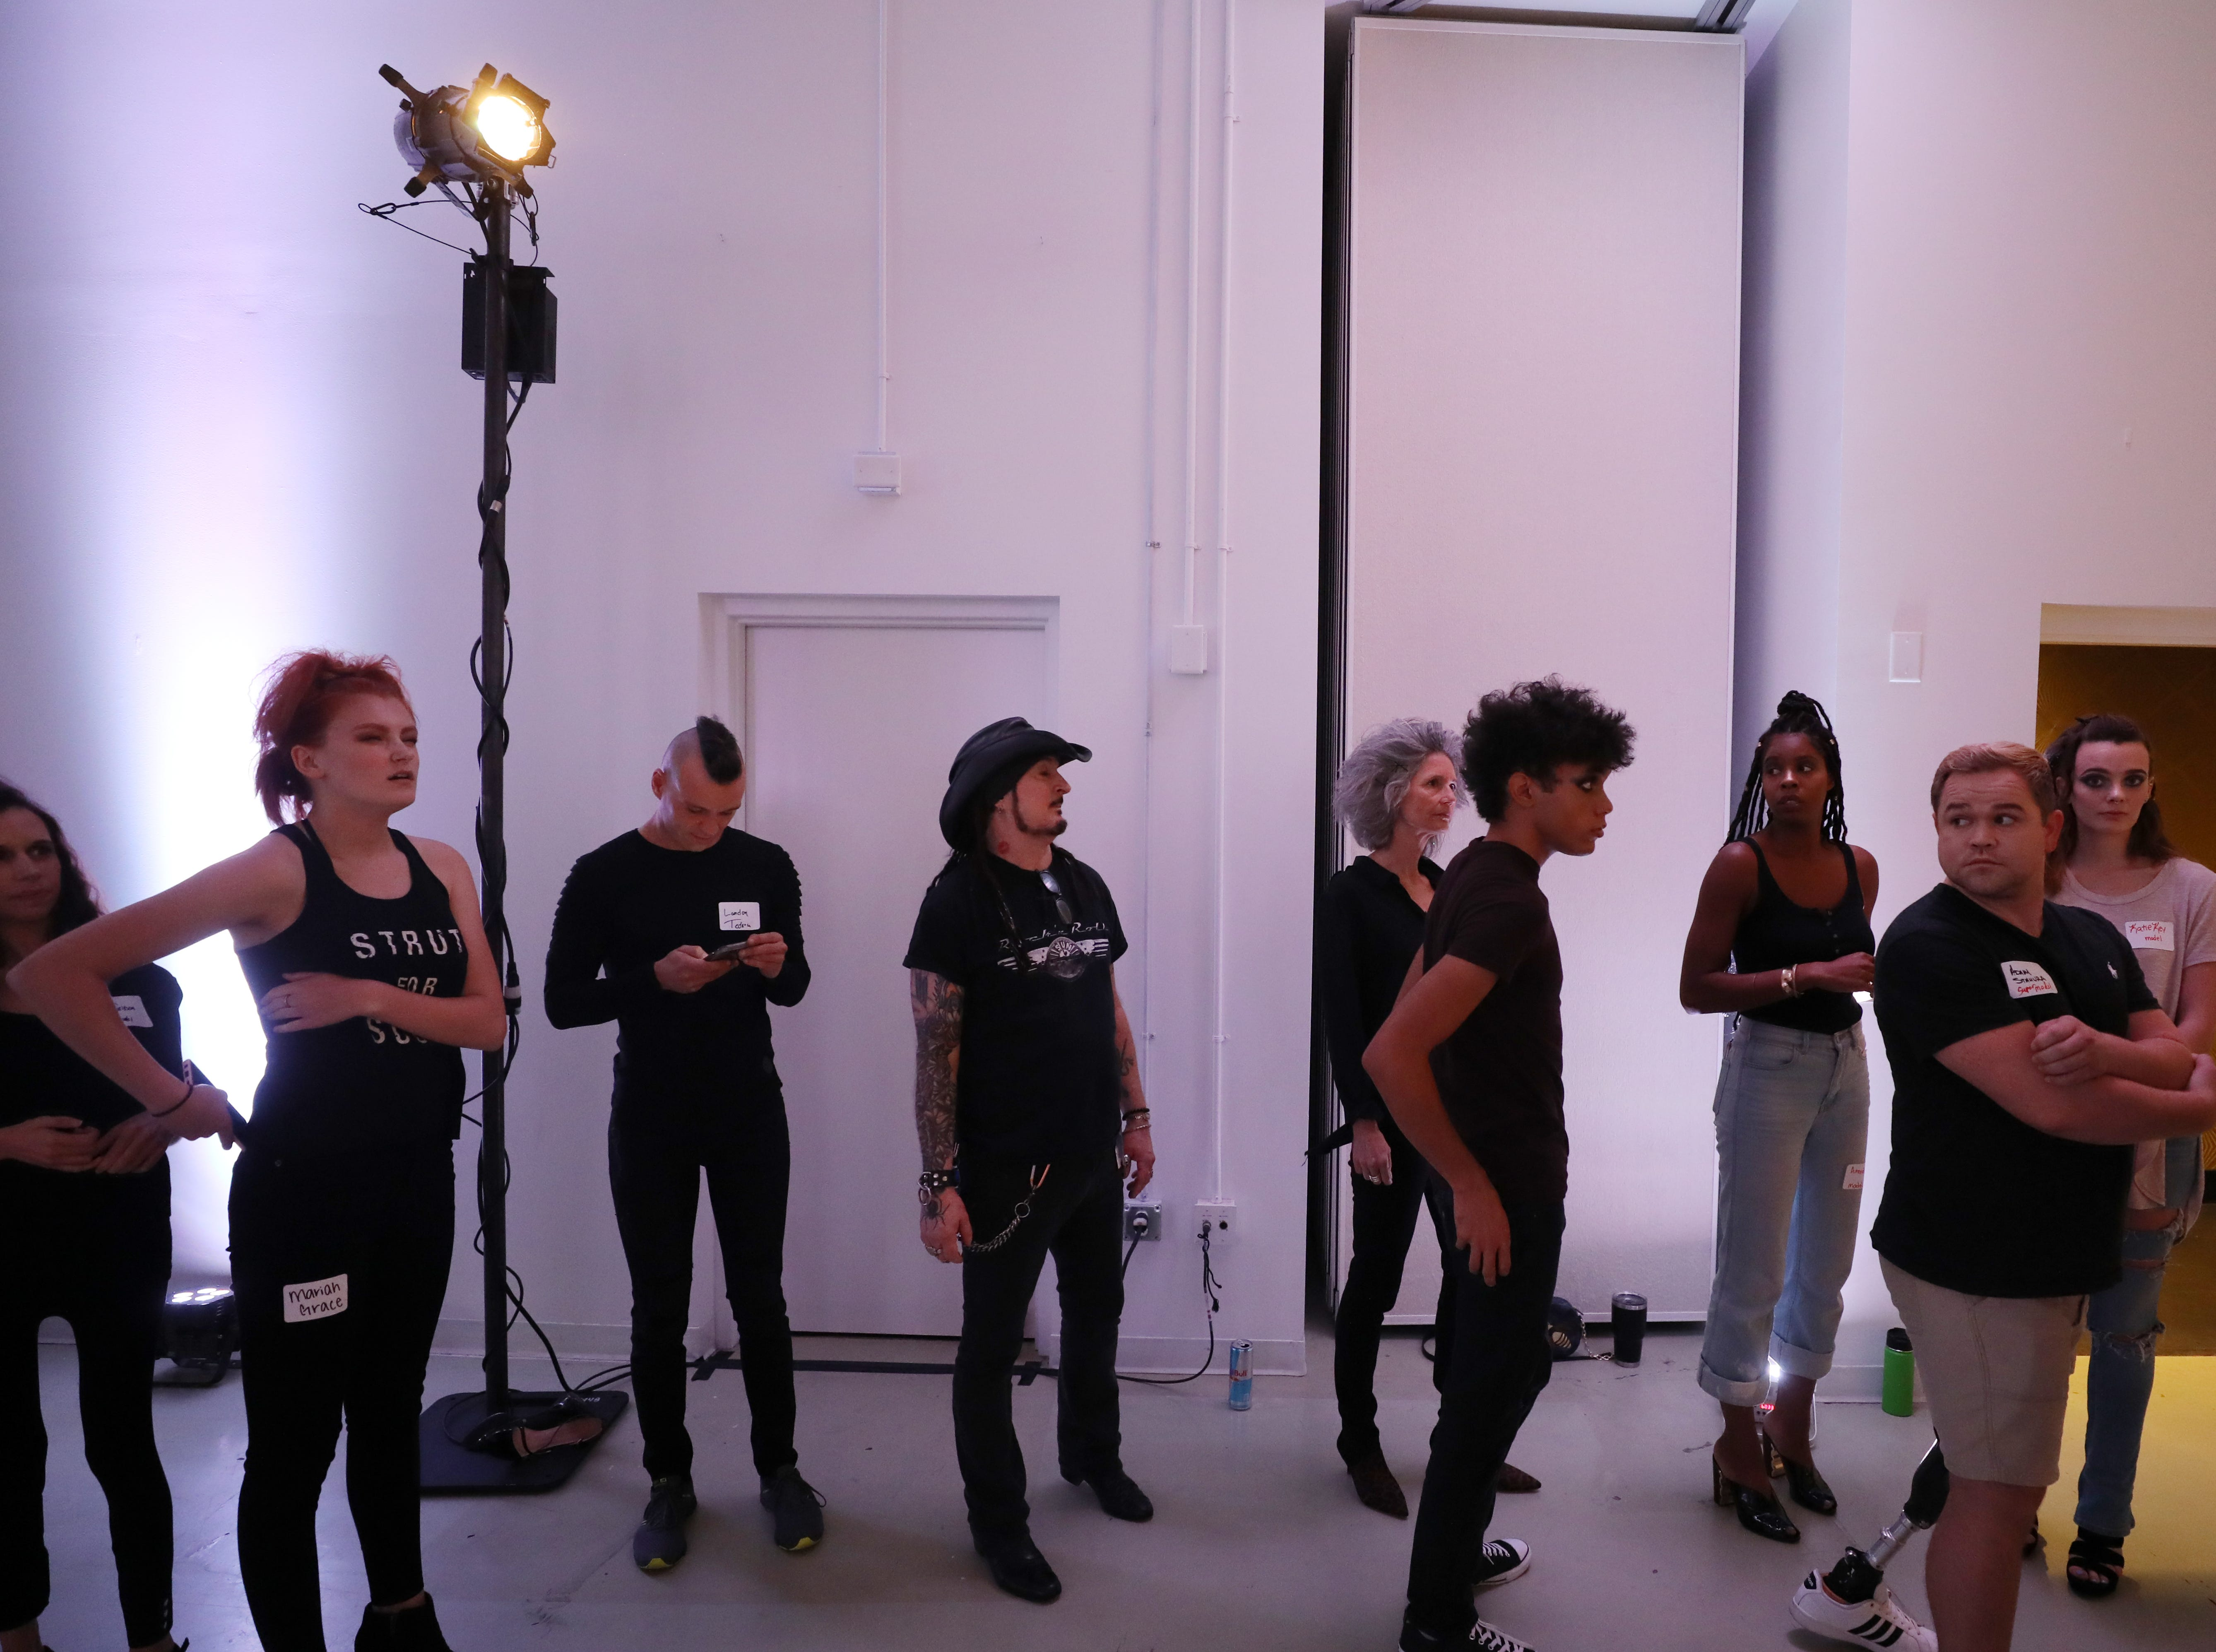 Models and staff prepare for the Boundless 2018 fashion show held at Studio 615 on Saturday September 8, 2018.